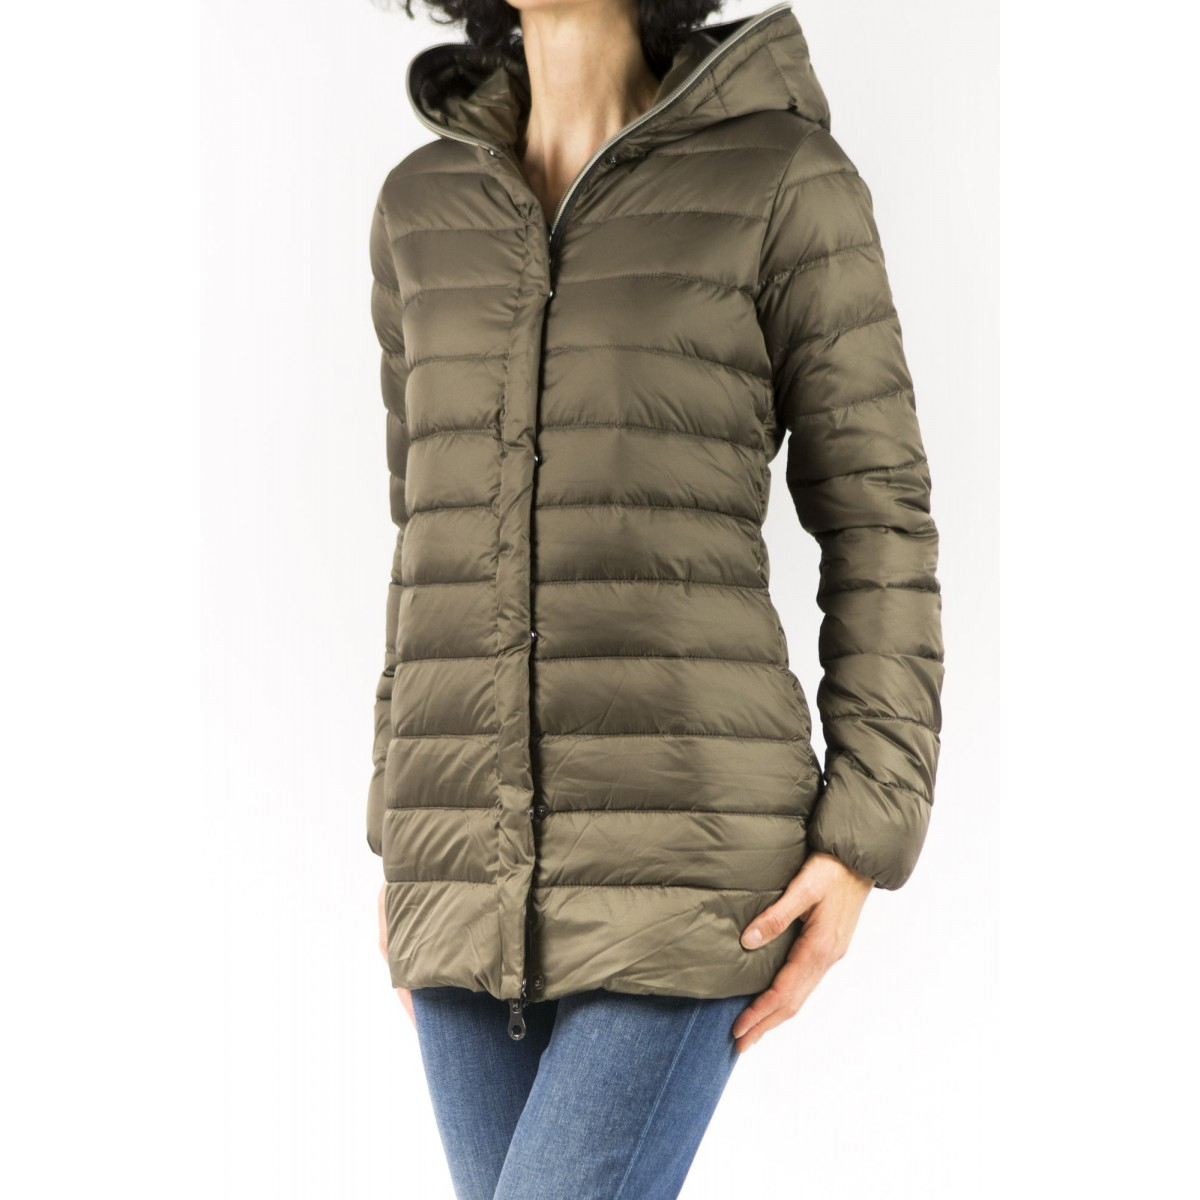 Down Jacket Duvetica - Morthond 152-D.4360.00/1164 177 - Fungo